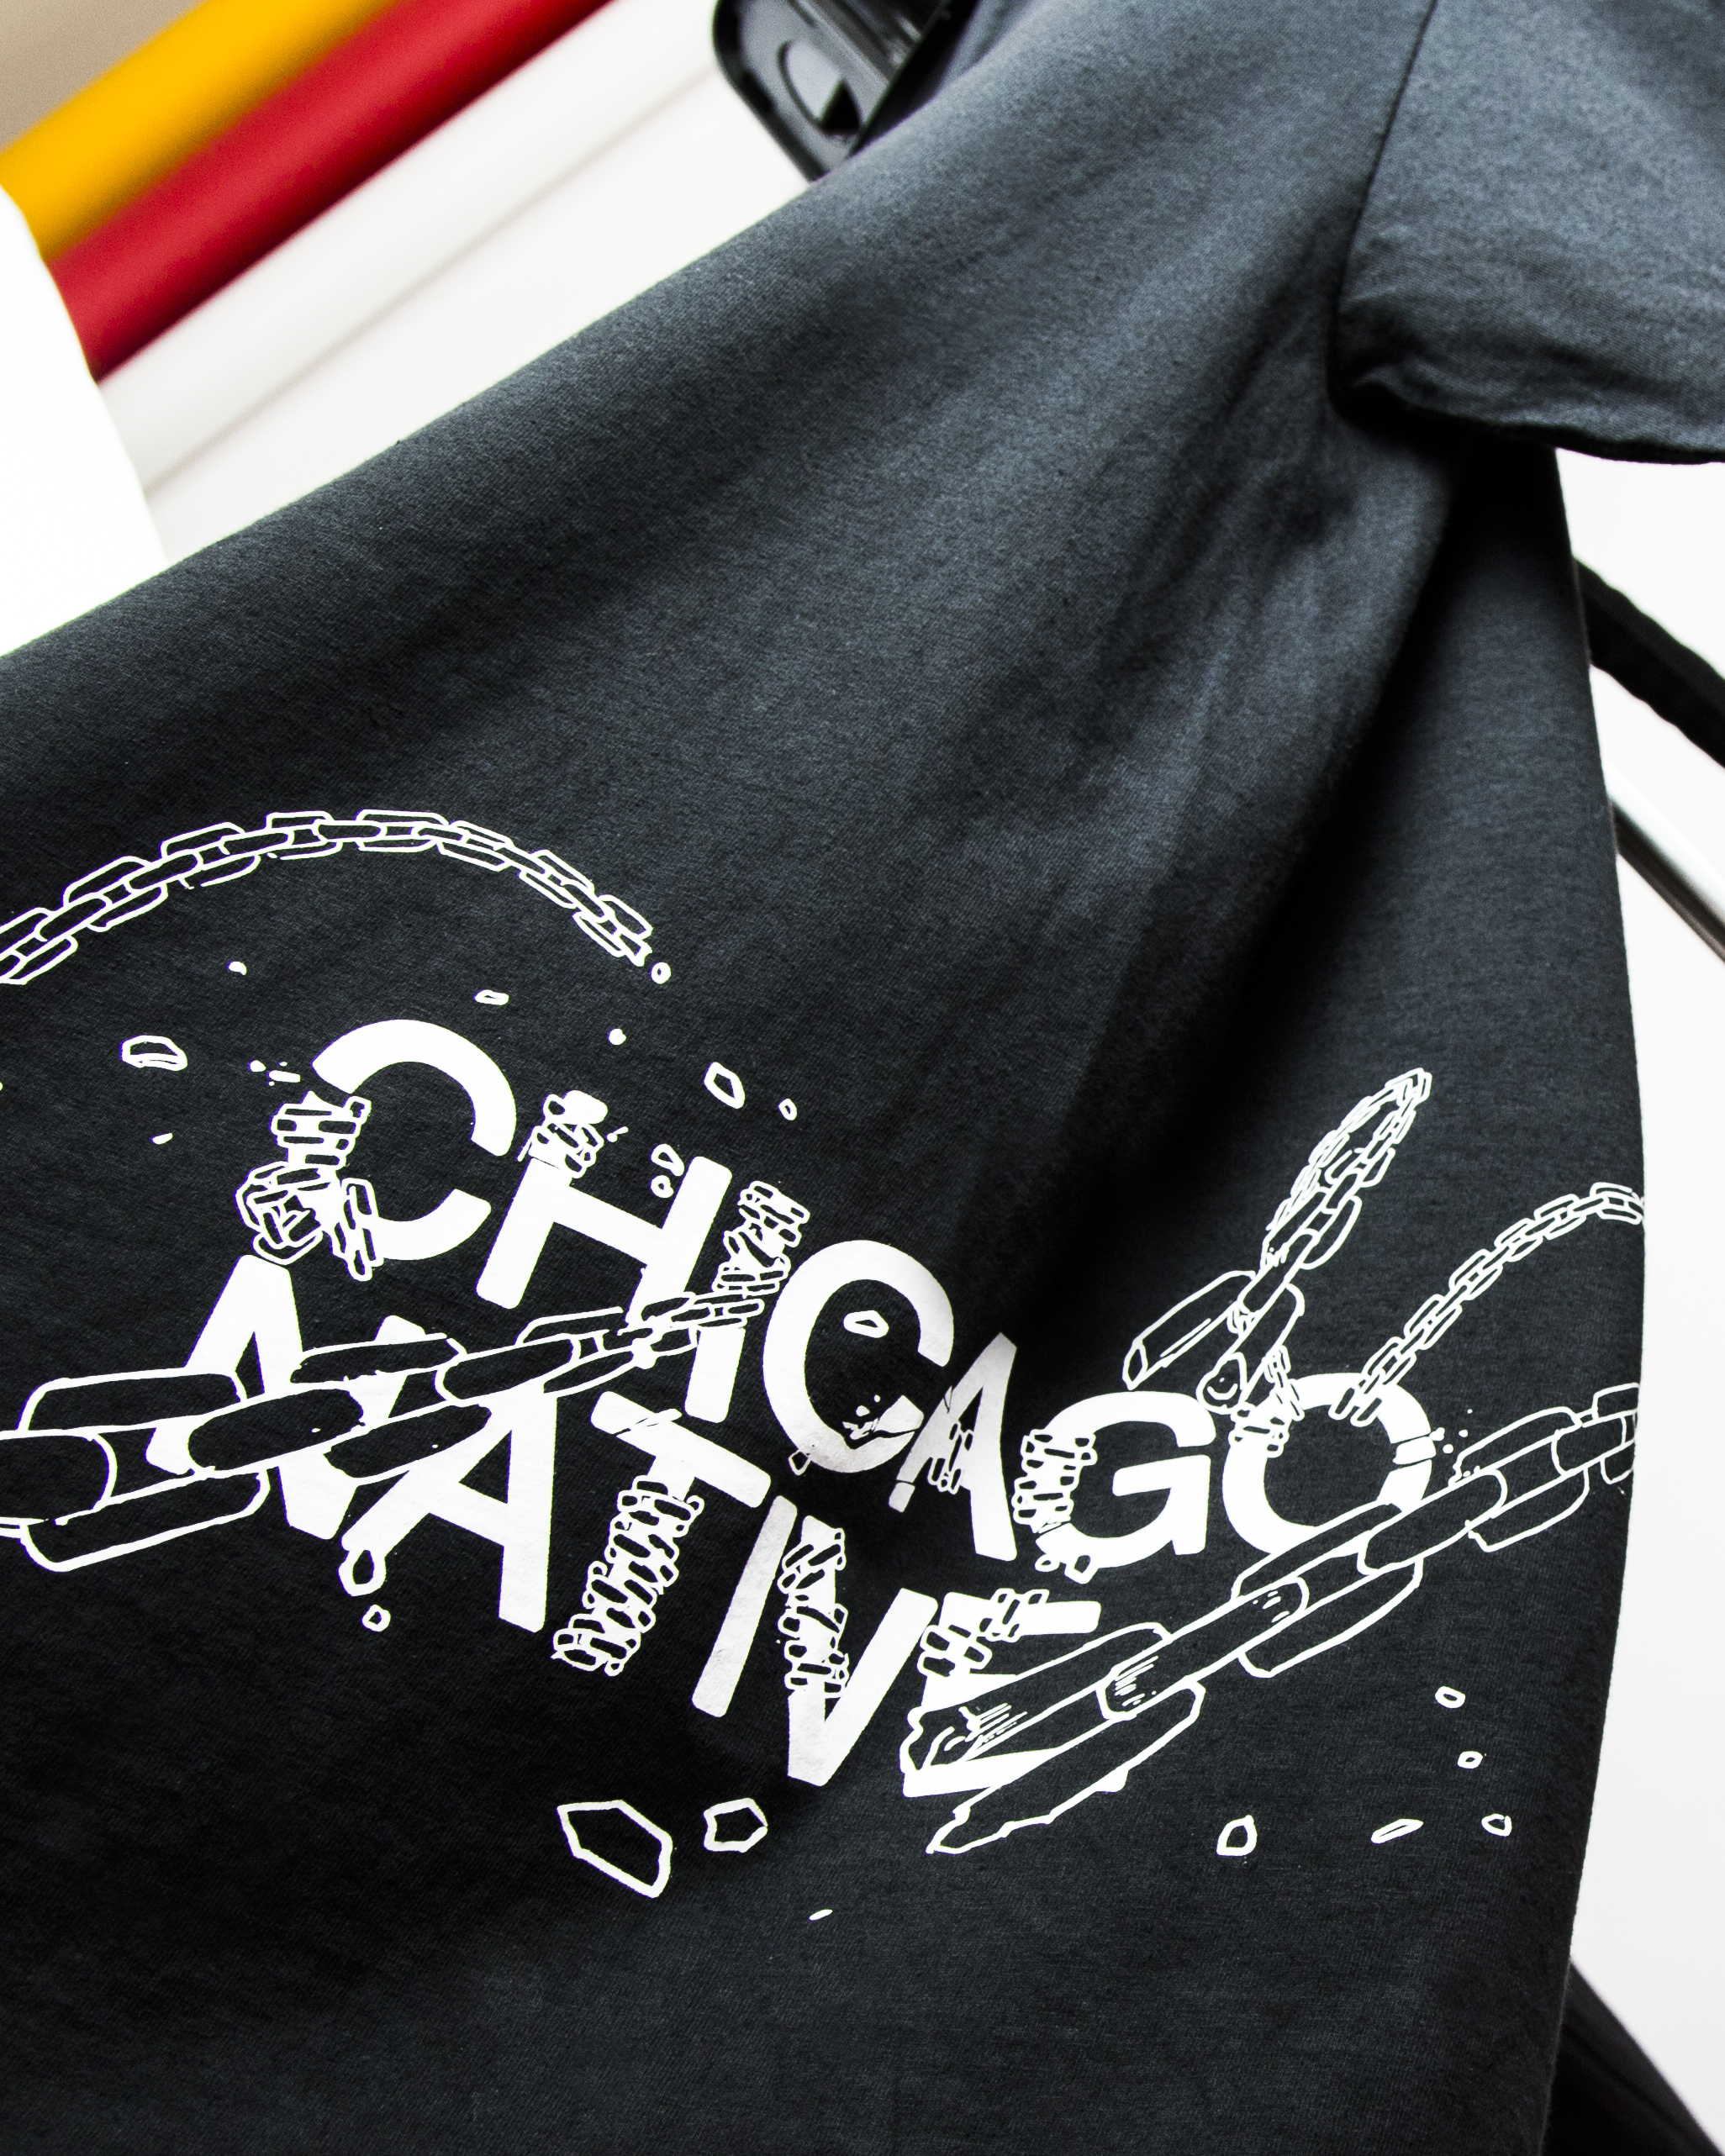 Chicago Native - Native Society - Juan Riesco Owner - Embroidered Local Streetwear.JPG